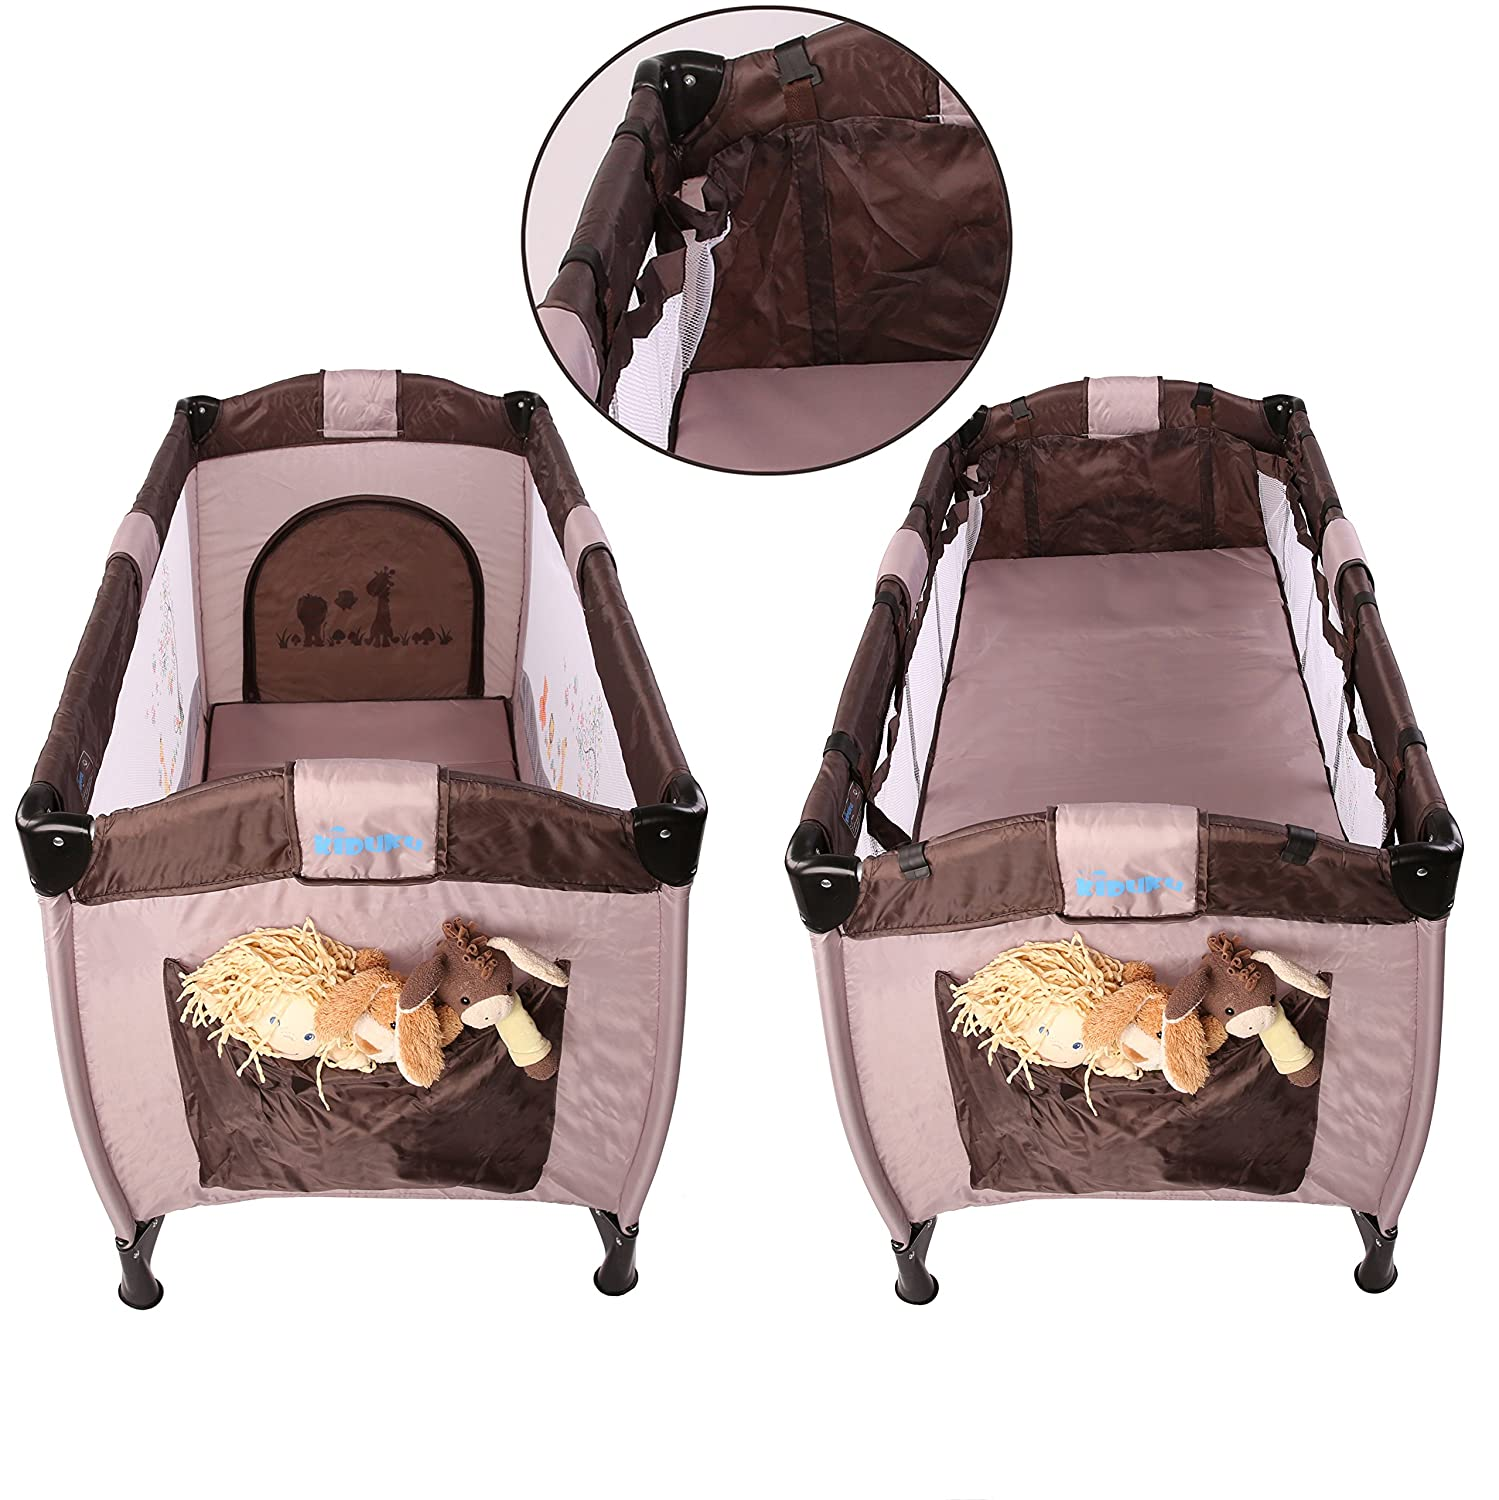 KIDUKU/® Baby bed travel cot crib portable child bed folding bed bedside cot playpen Brown height-adjustable 6 different colours second level for infants//babies